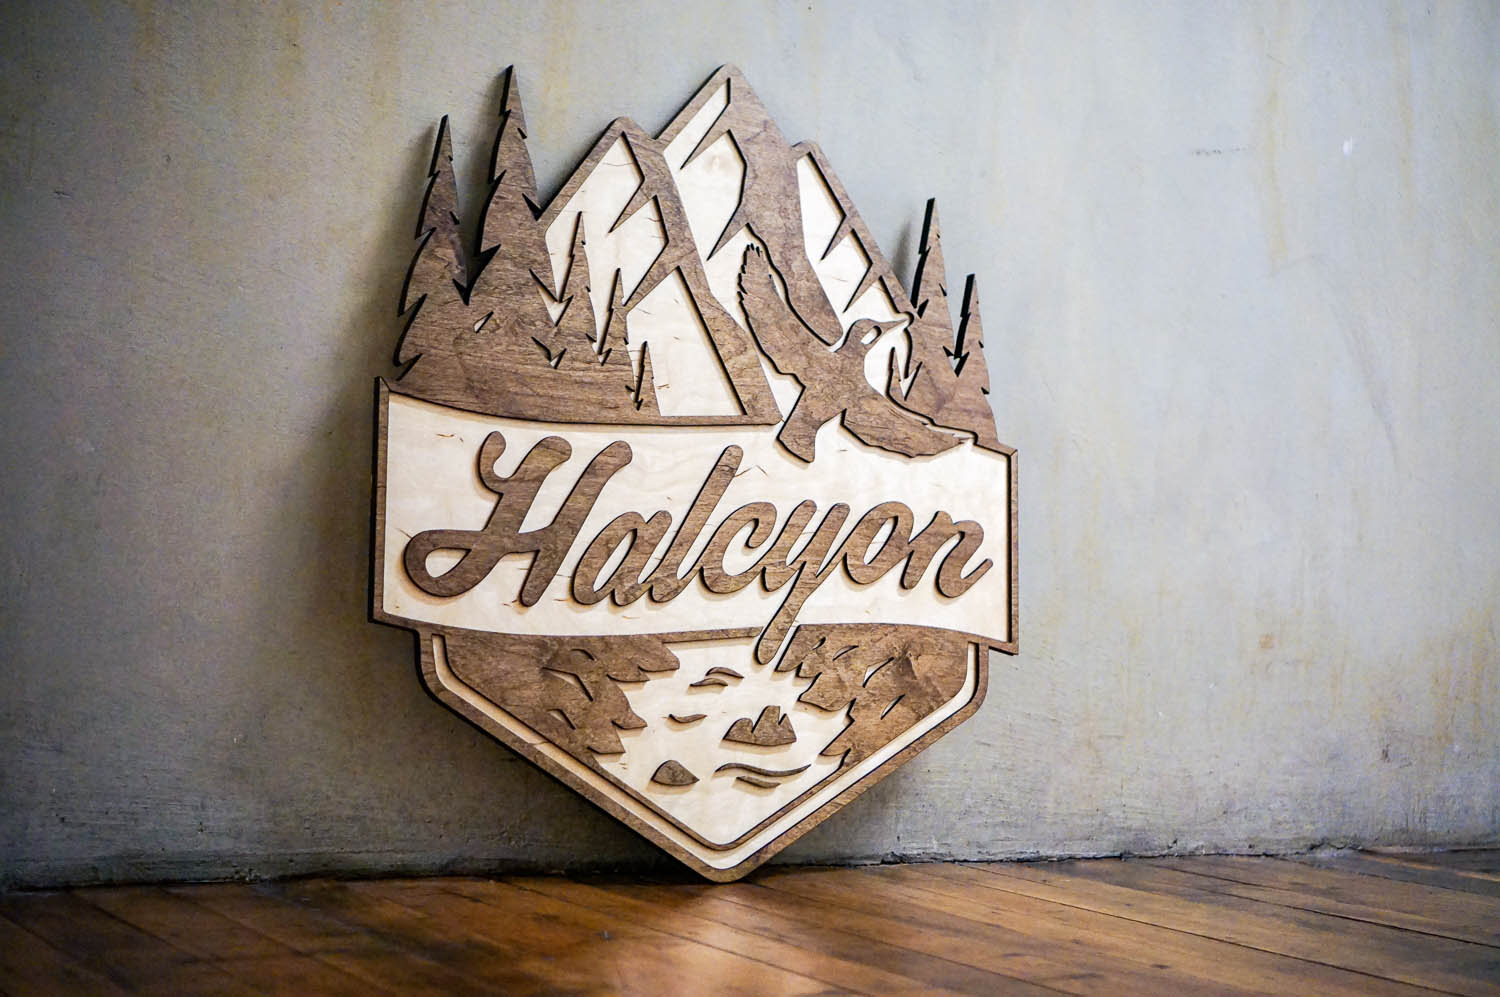 Halcyon Financial Raised Wood Sign